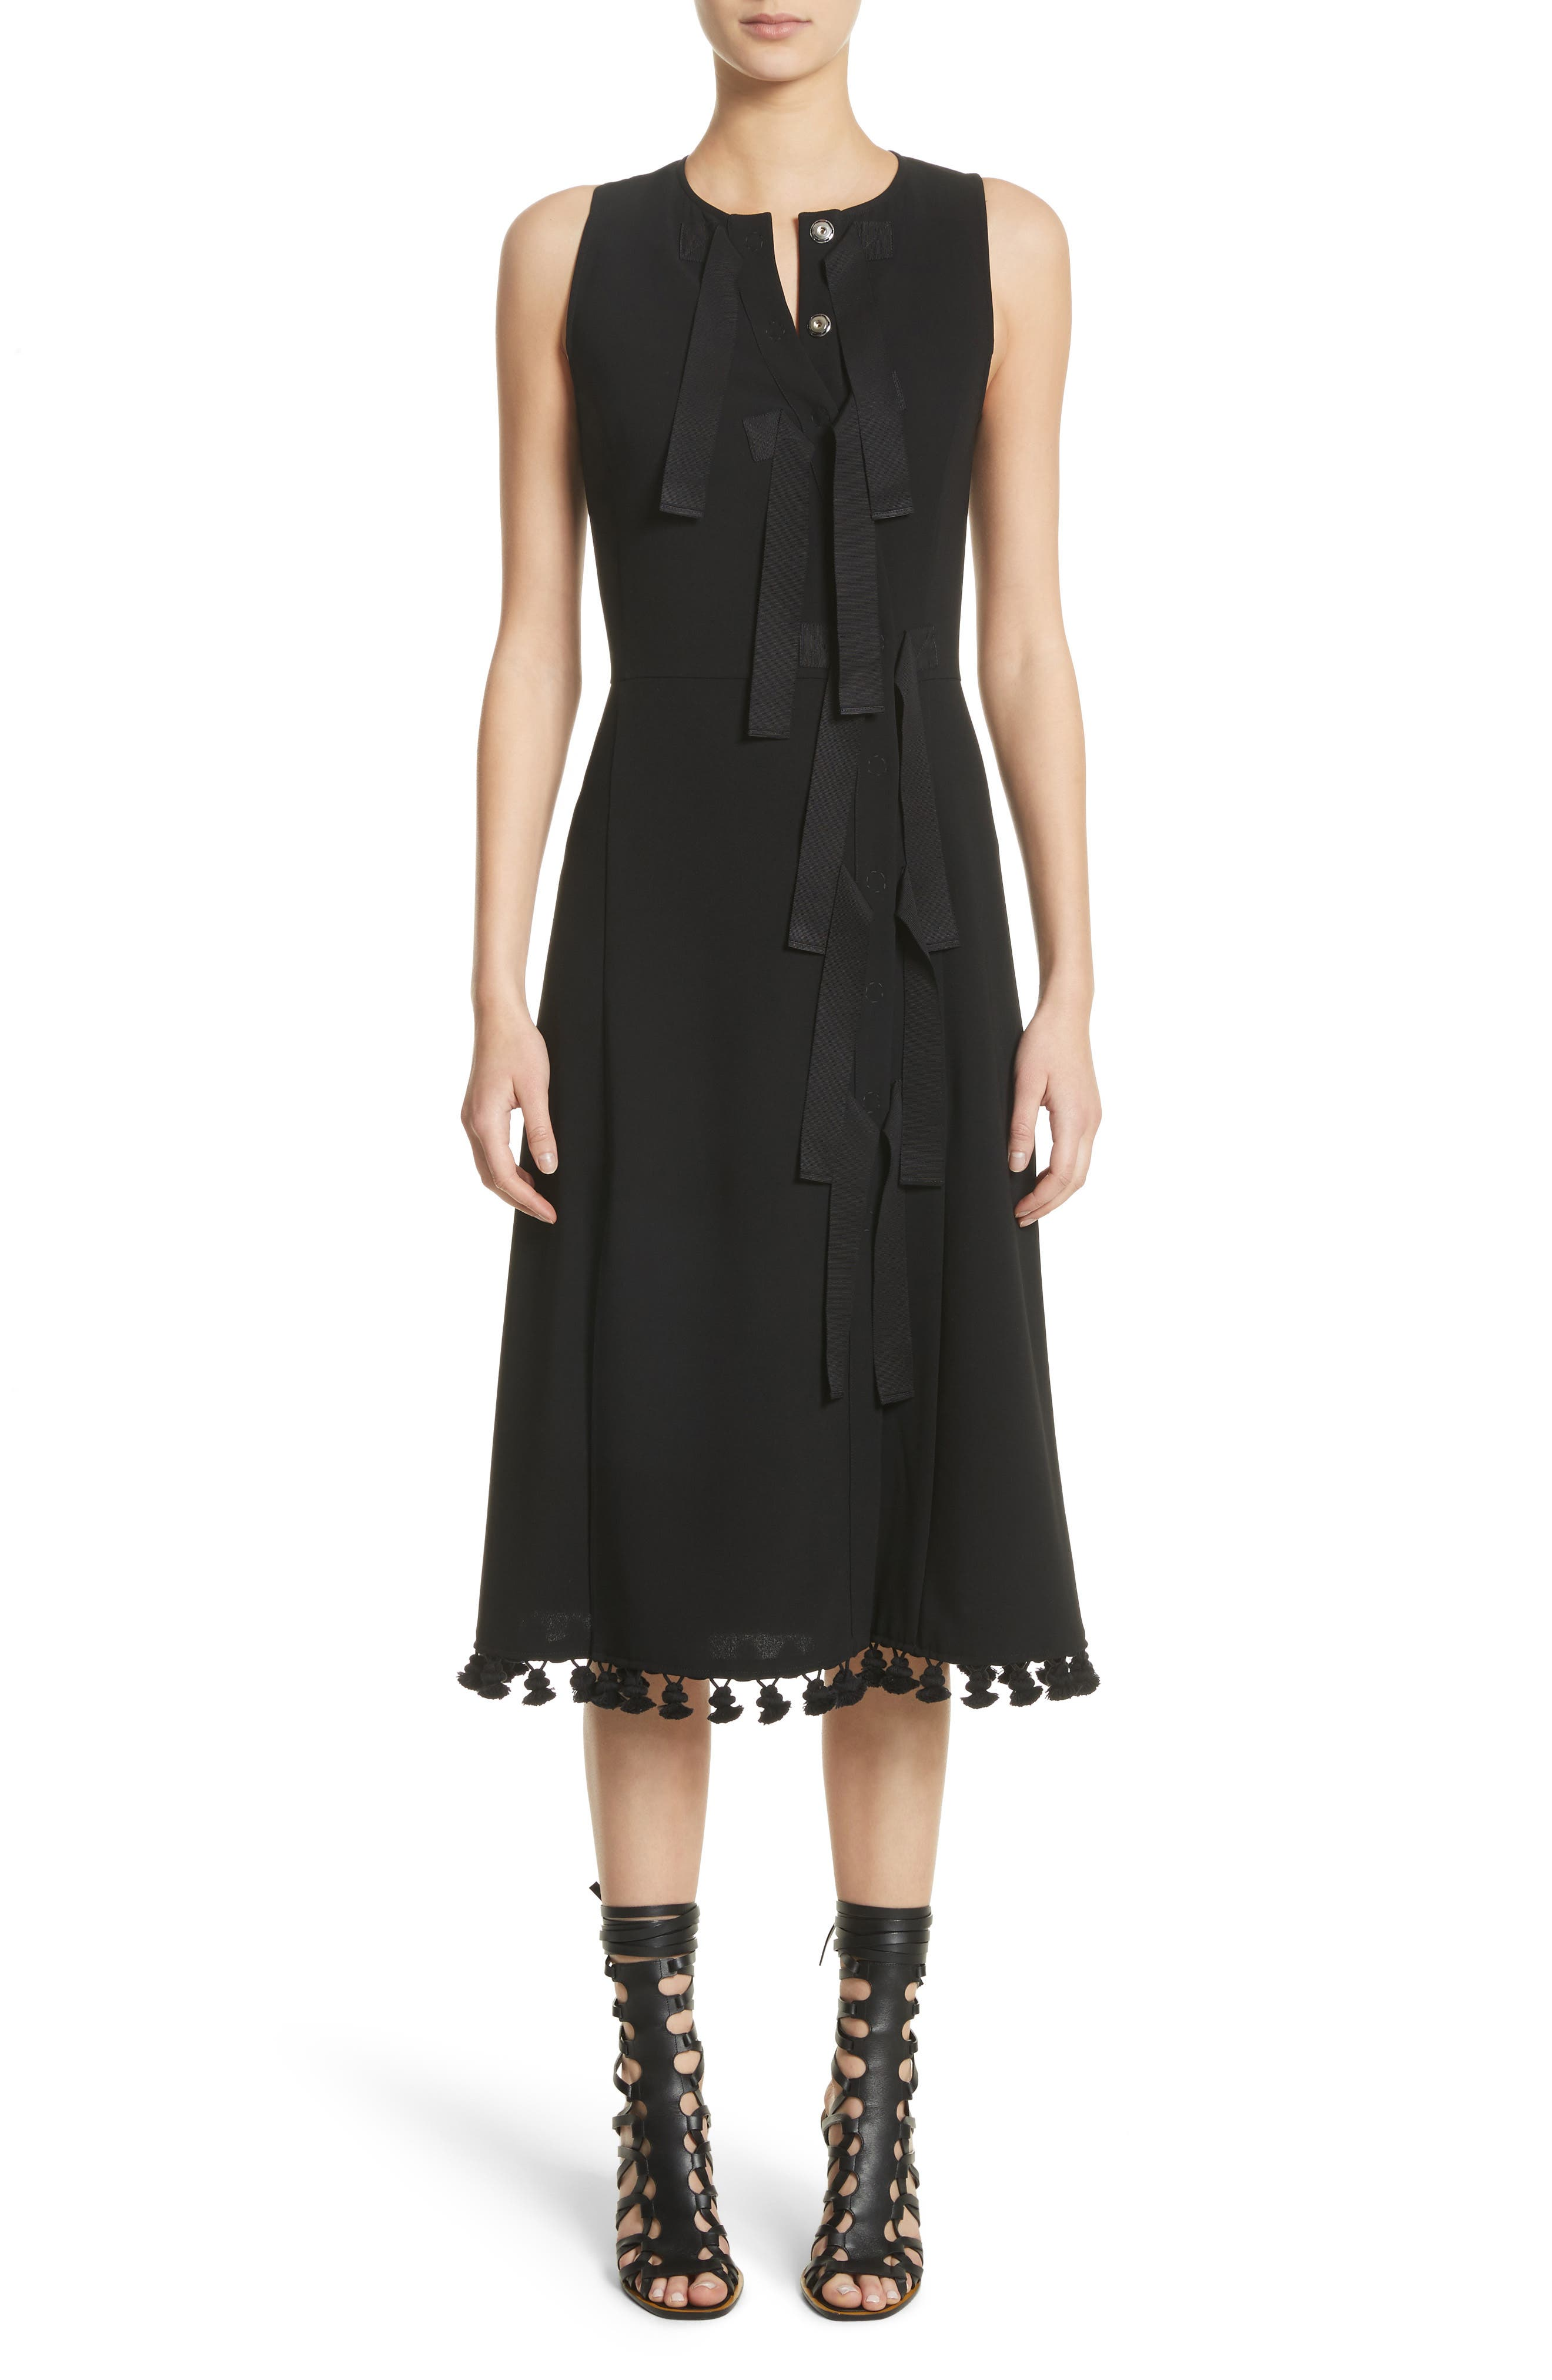 Altuzarra Grosgrain Tie Dress